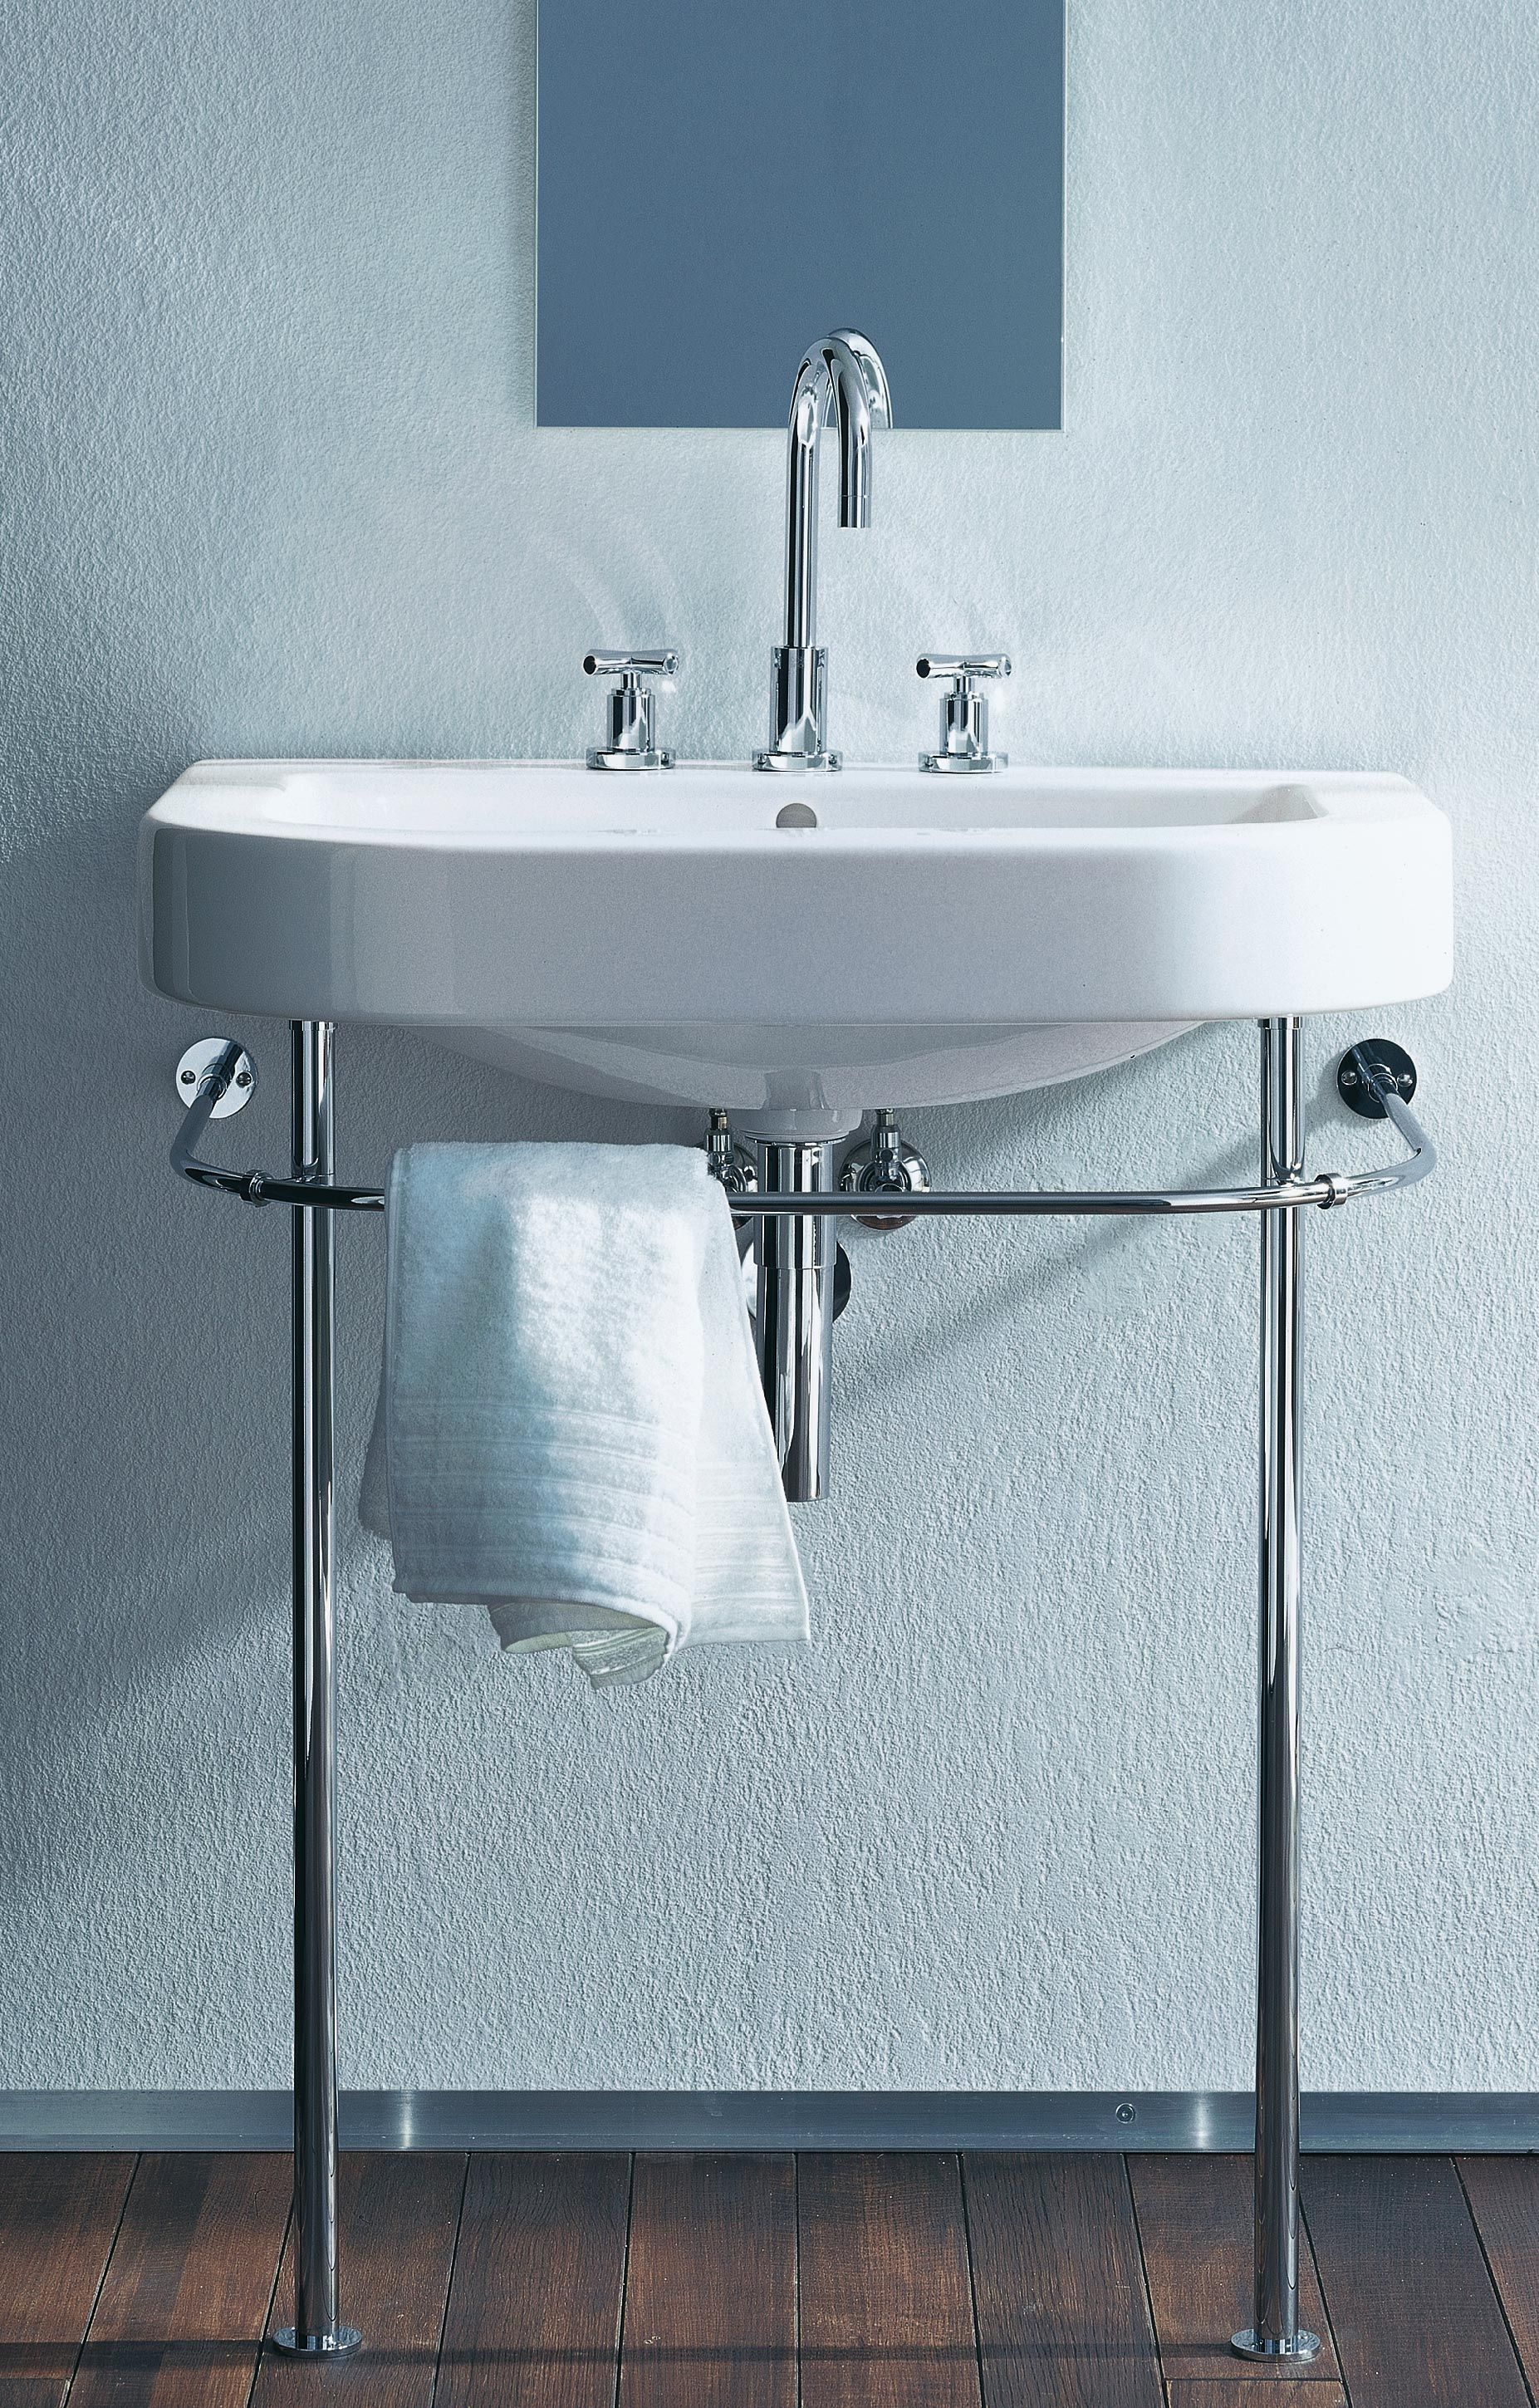 com en norman bathroom milieu furniture products sink foster people all by duravit series pedestal